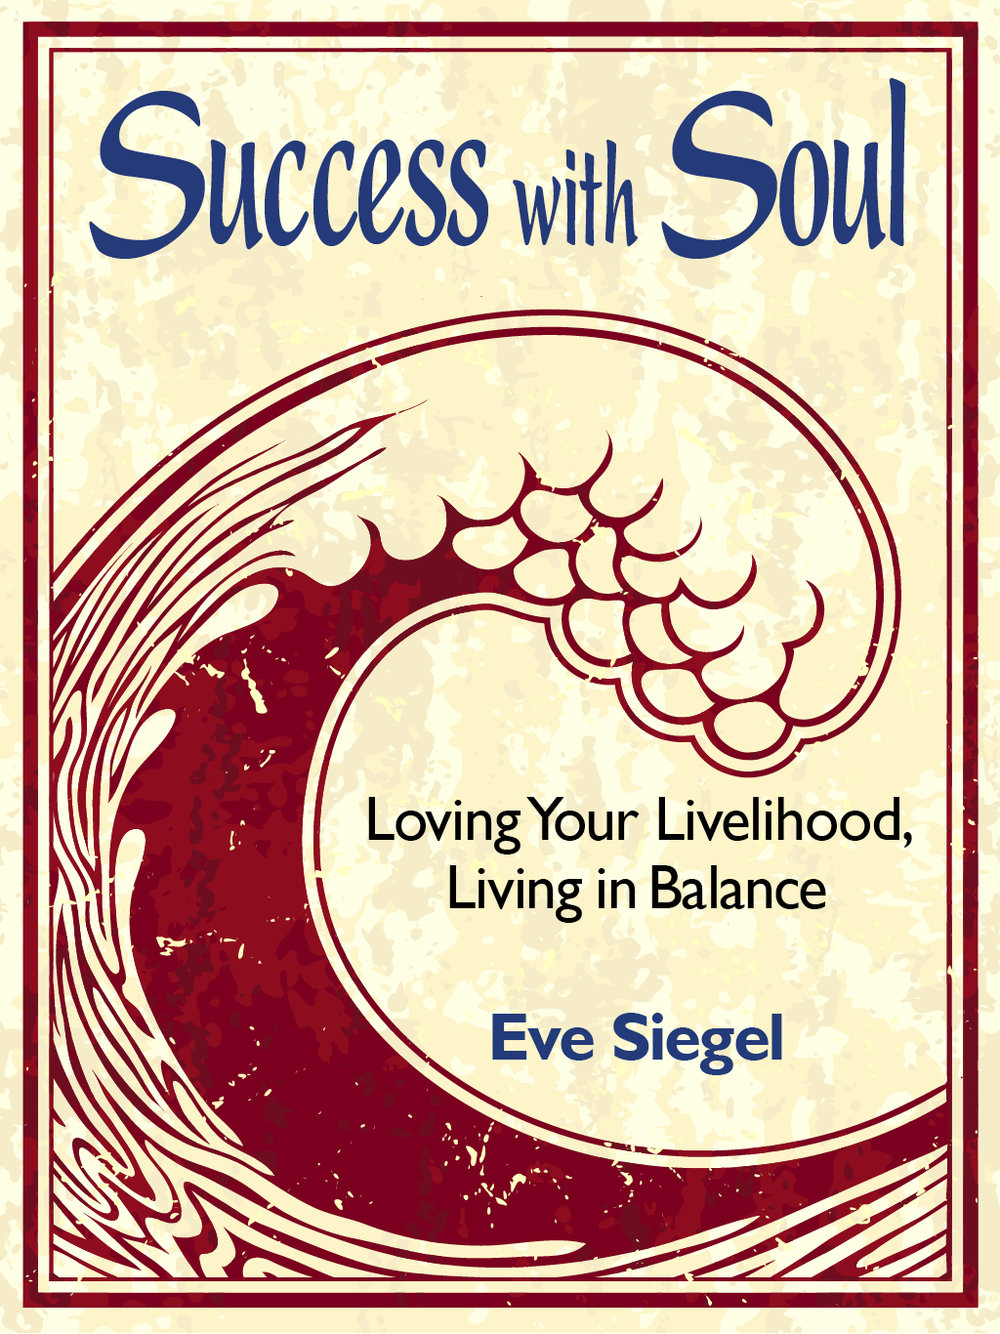 SuccessSoul_cover-final-4_13.jpg